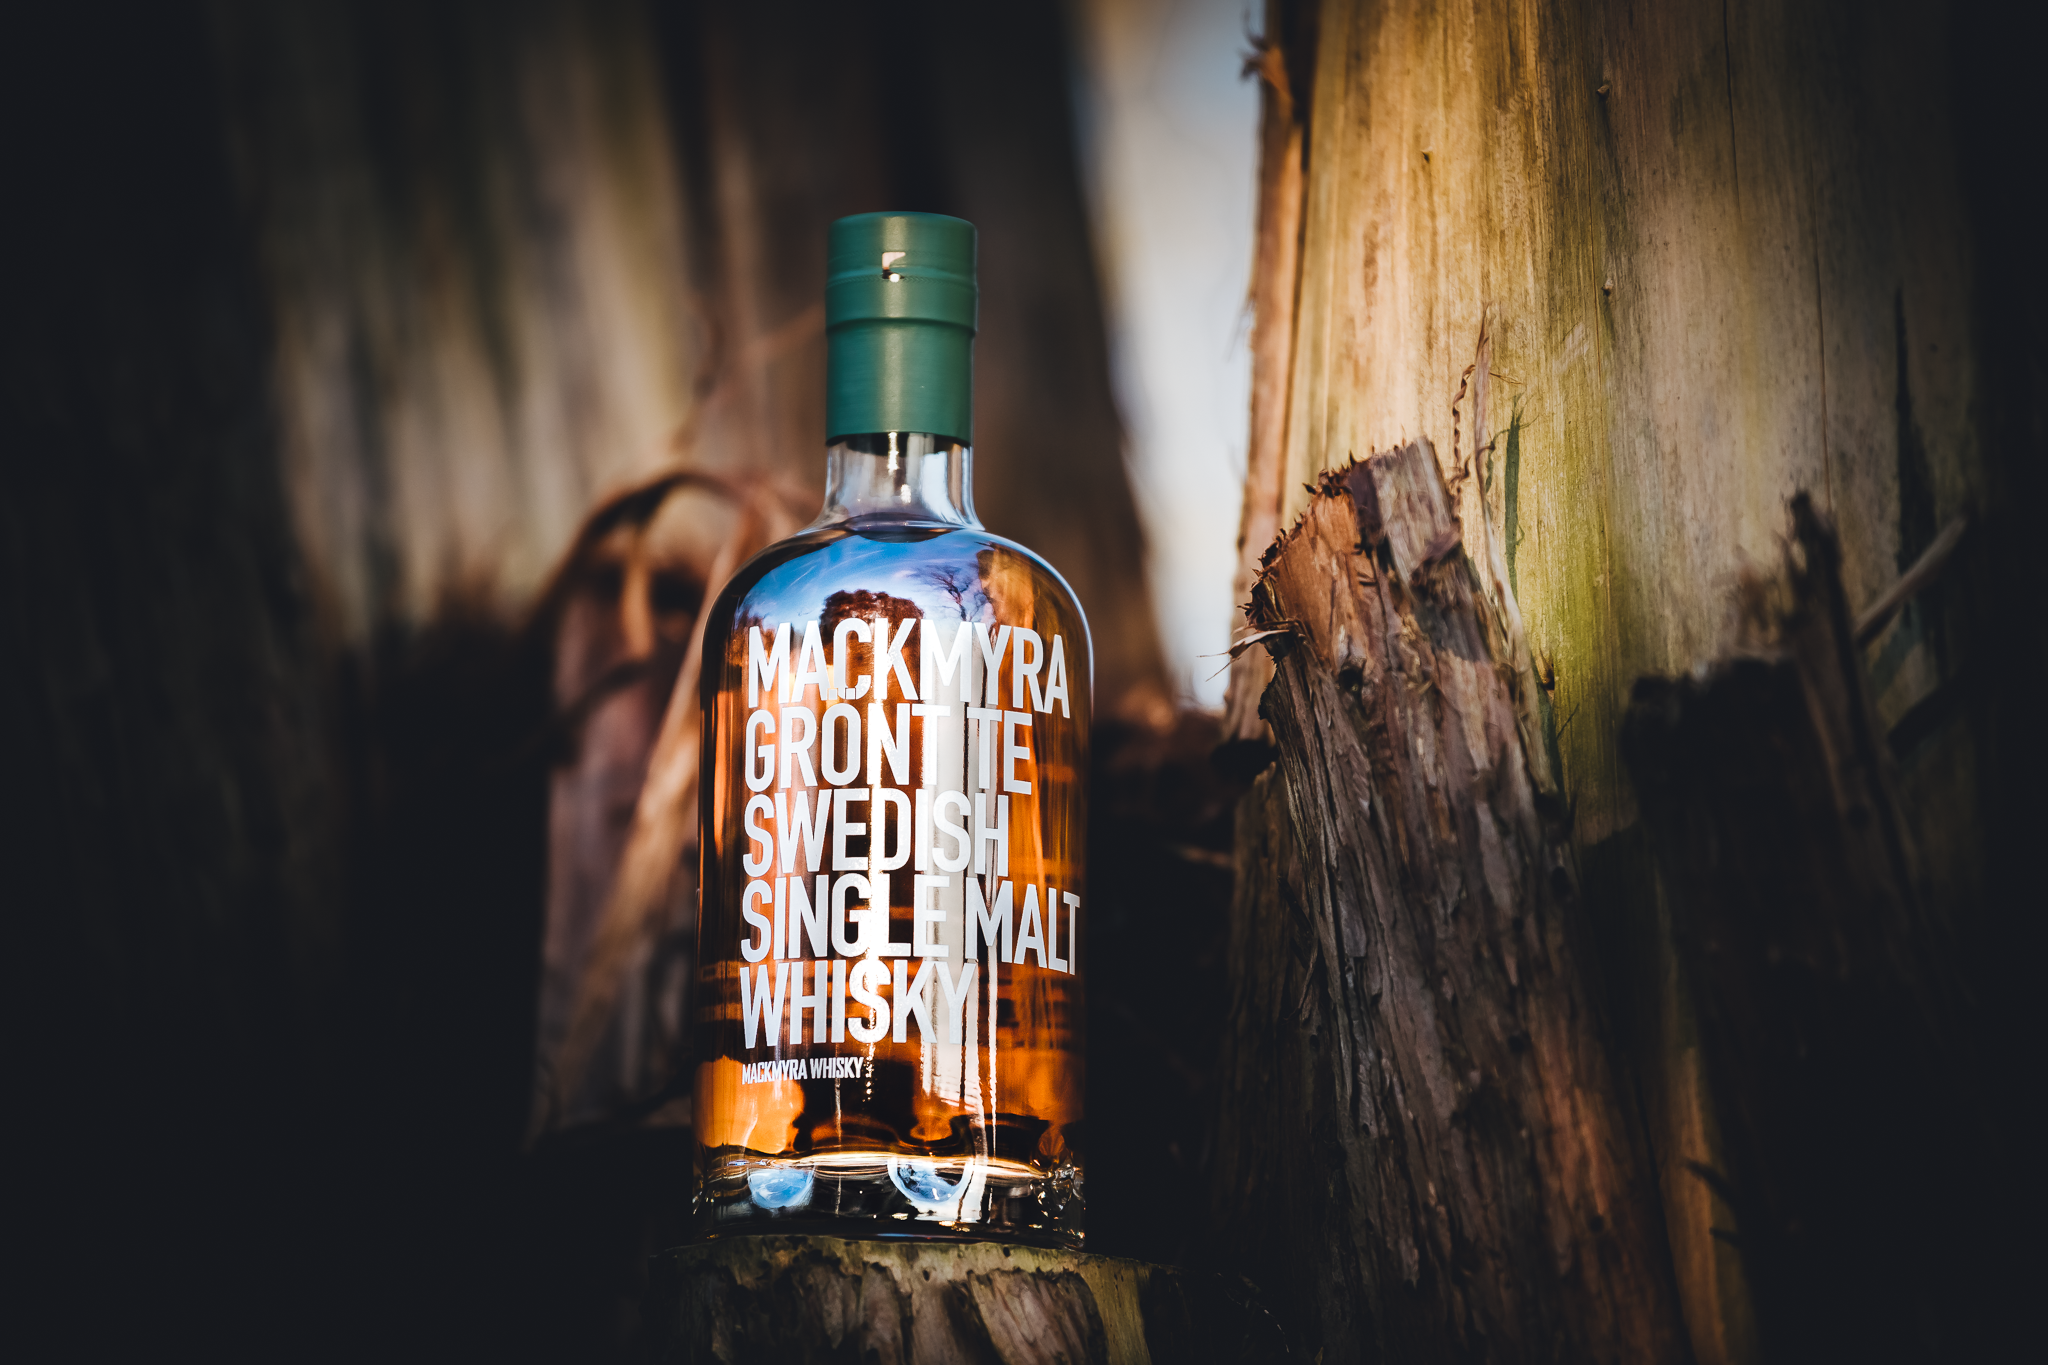 April 2020 – Mackmyra Grönt Te, Summerton Whisky Club - Excellence in Whisky